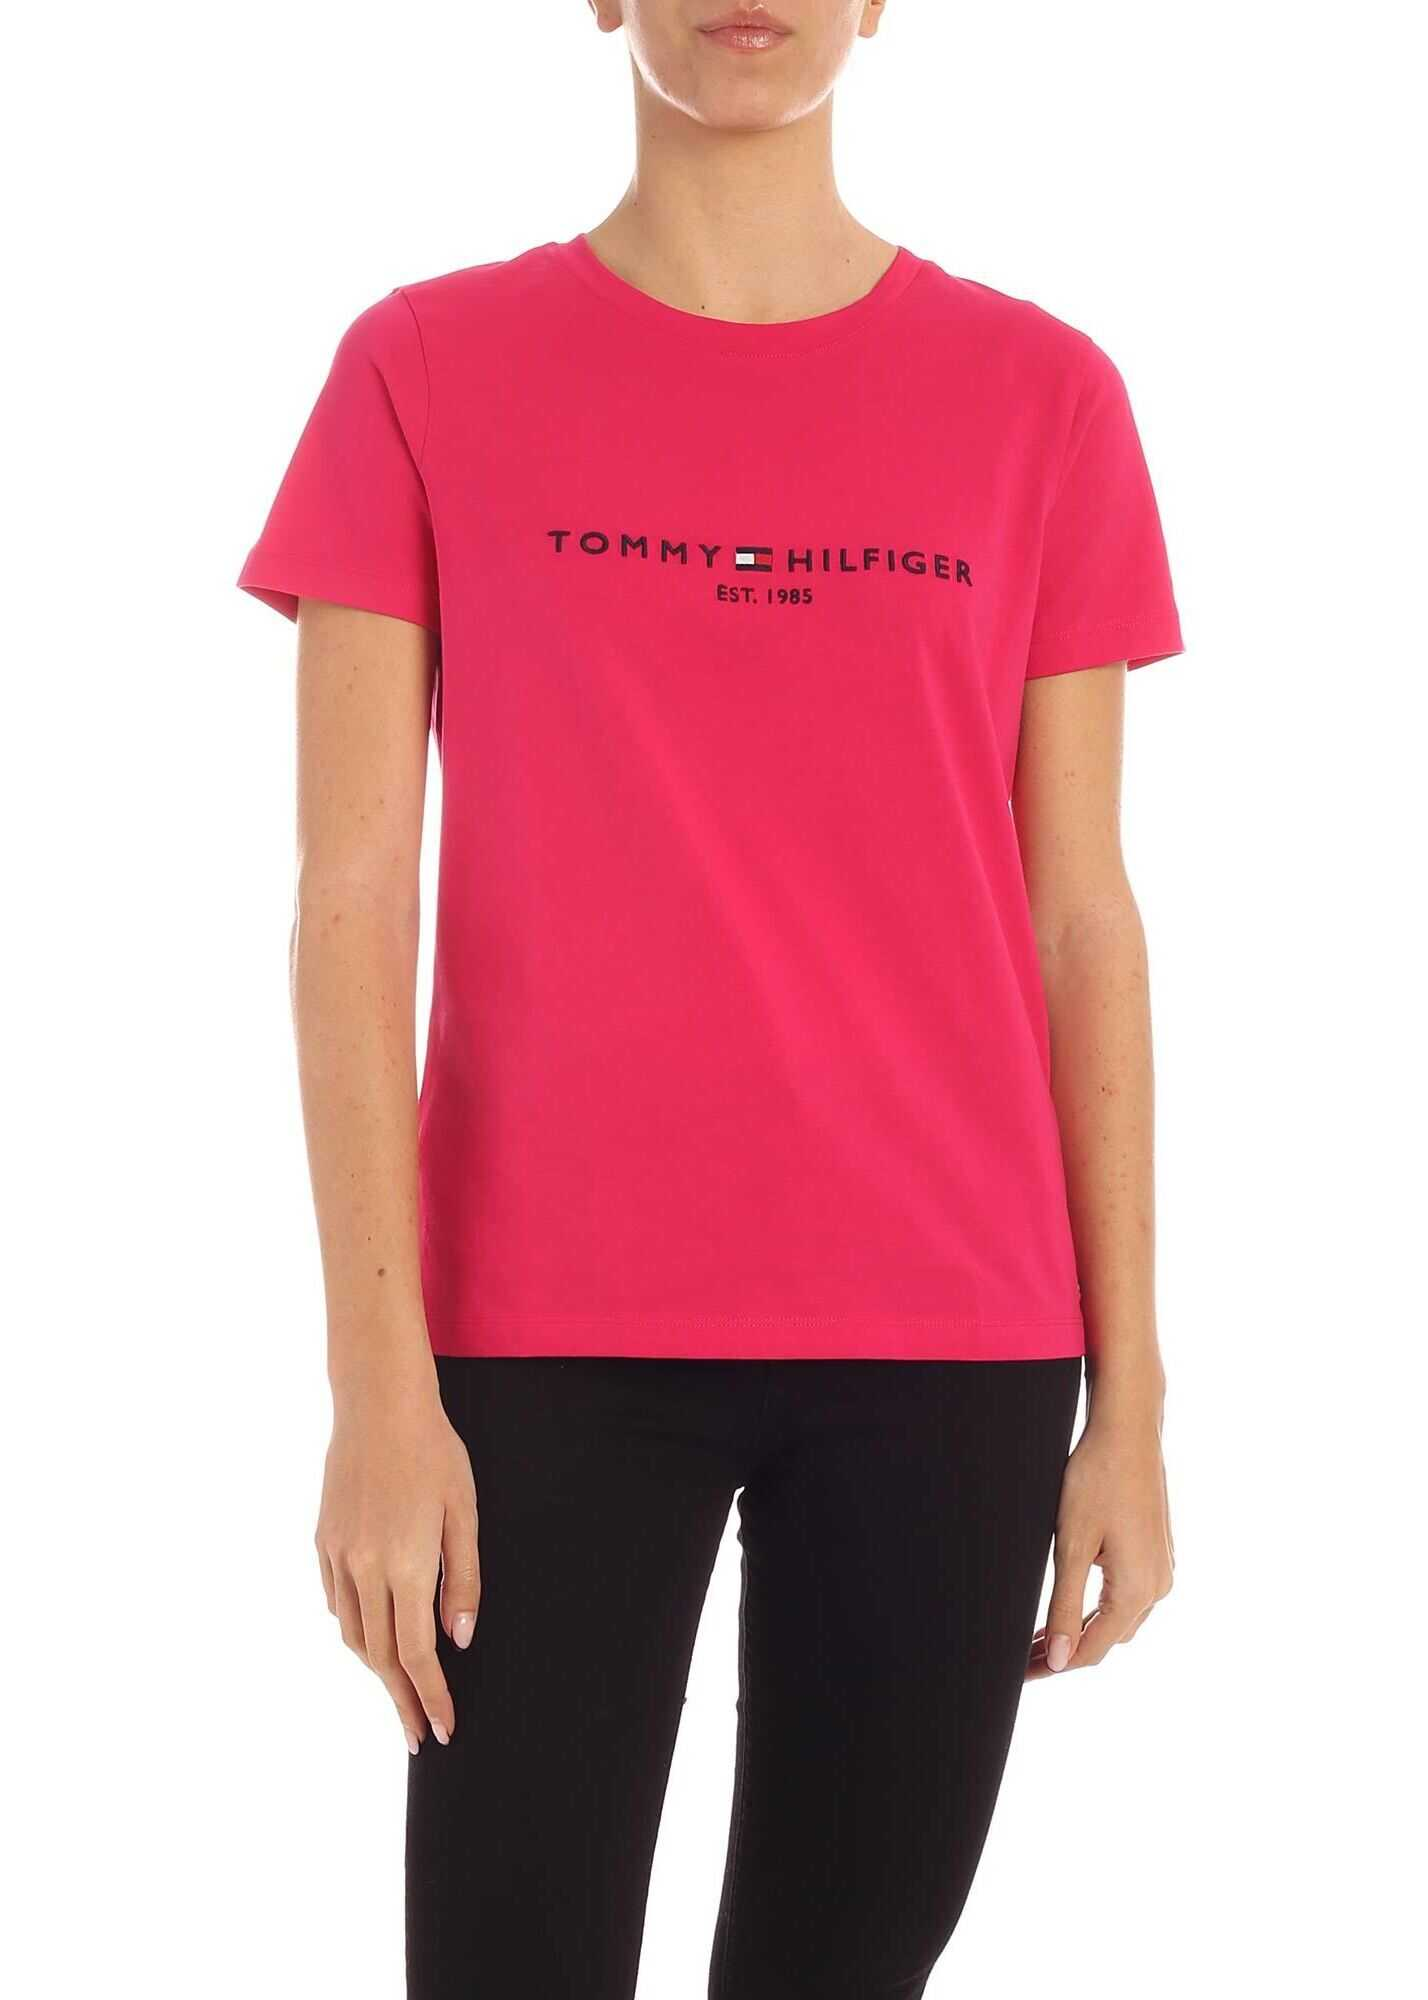 Tommy Hilfiger Bright Jewel T-Shirt In Fuchsia Fuchsia